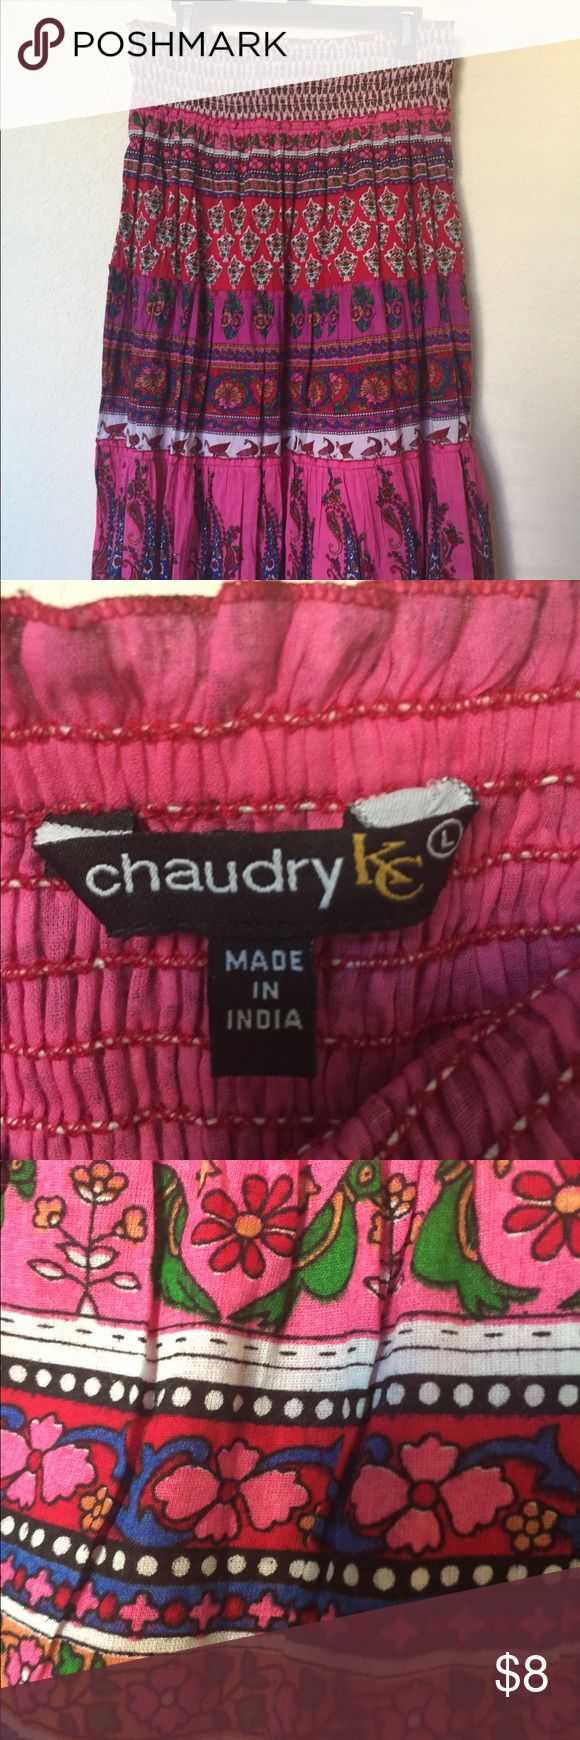 Chaudry KC Maxi Skirt Light cotton maxi skirt made in India! Adorable parrot details chaudry kc Skirts Maxi